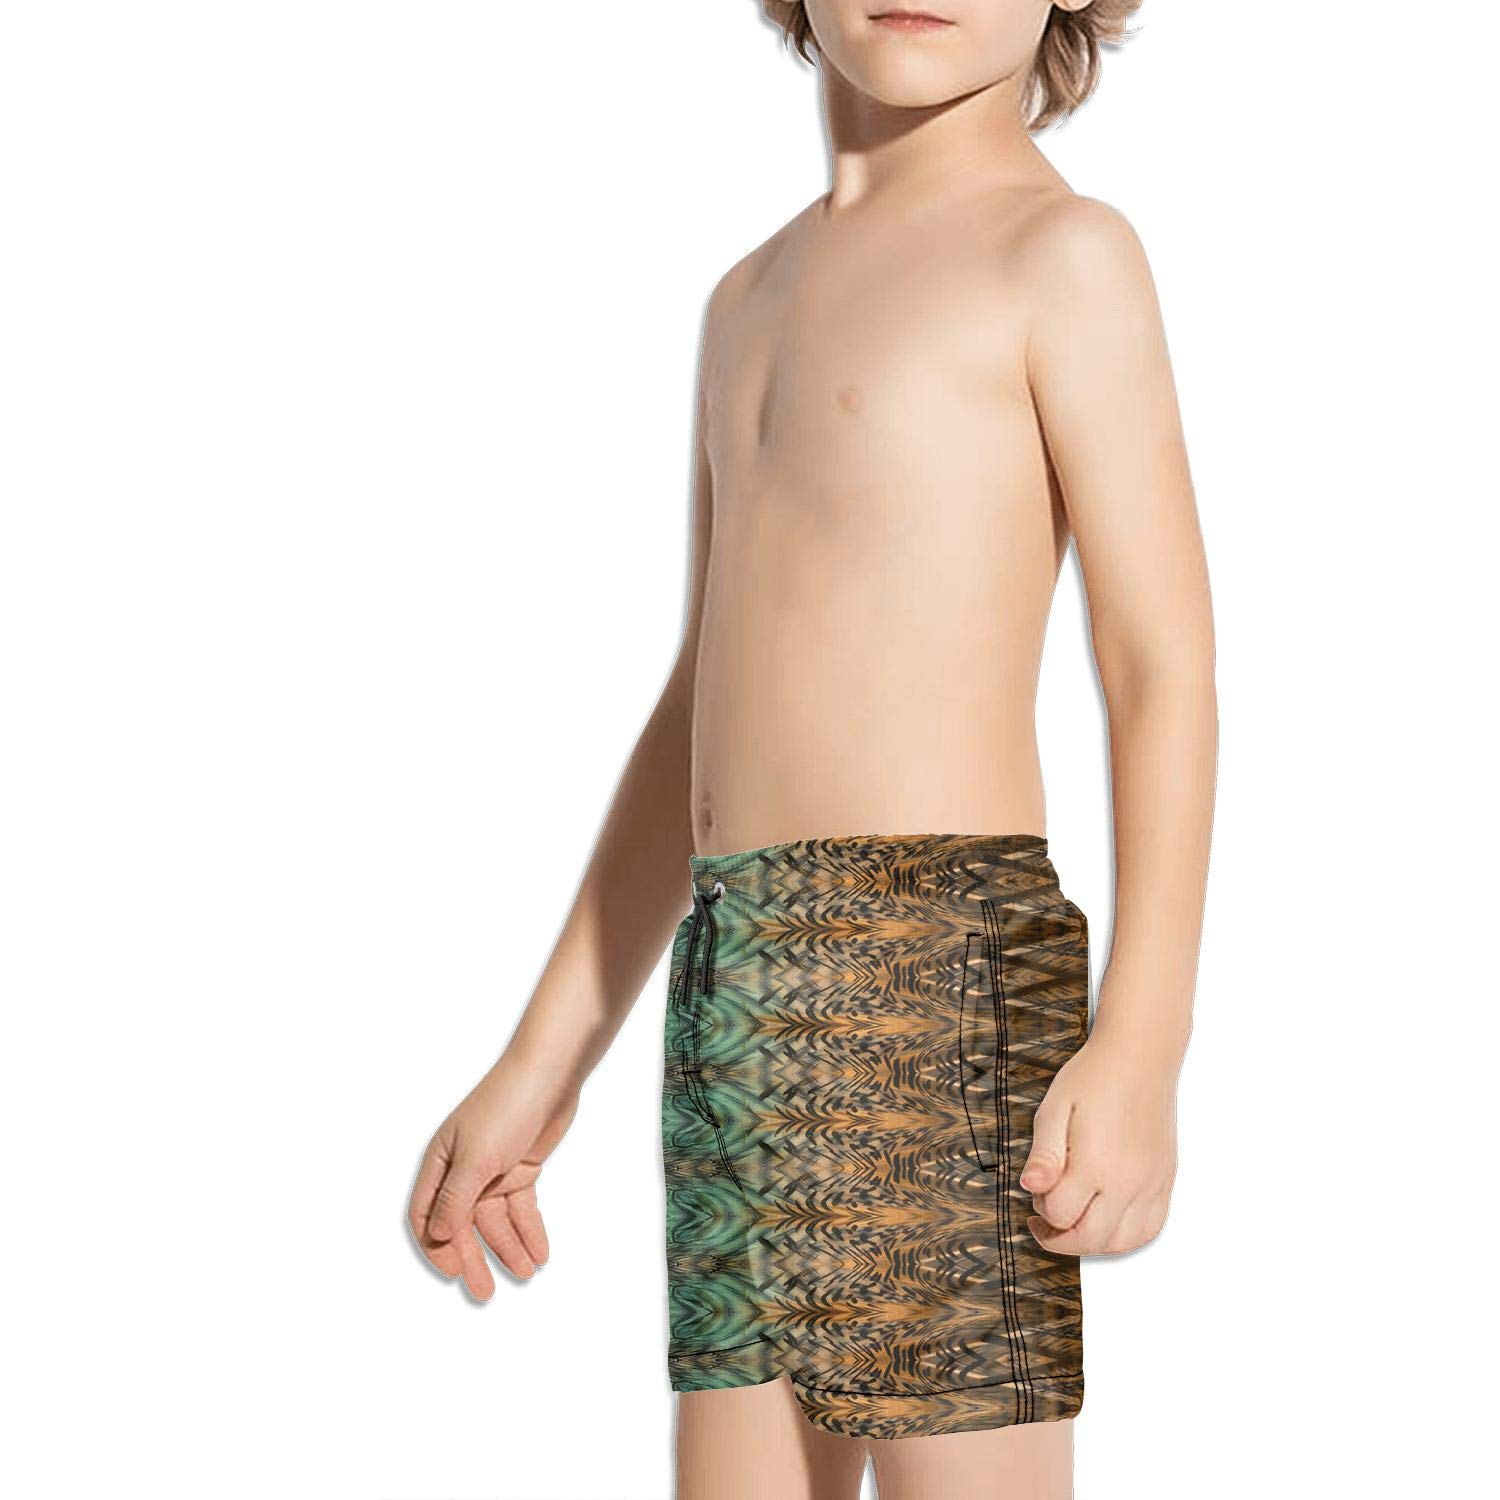 FullBo Leopard and Snake Design Pattern Little Boys Short Swim Trunks Quick Dry Beach Shorts